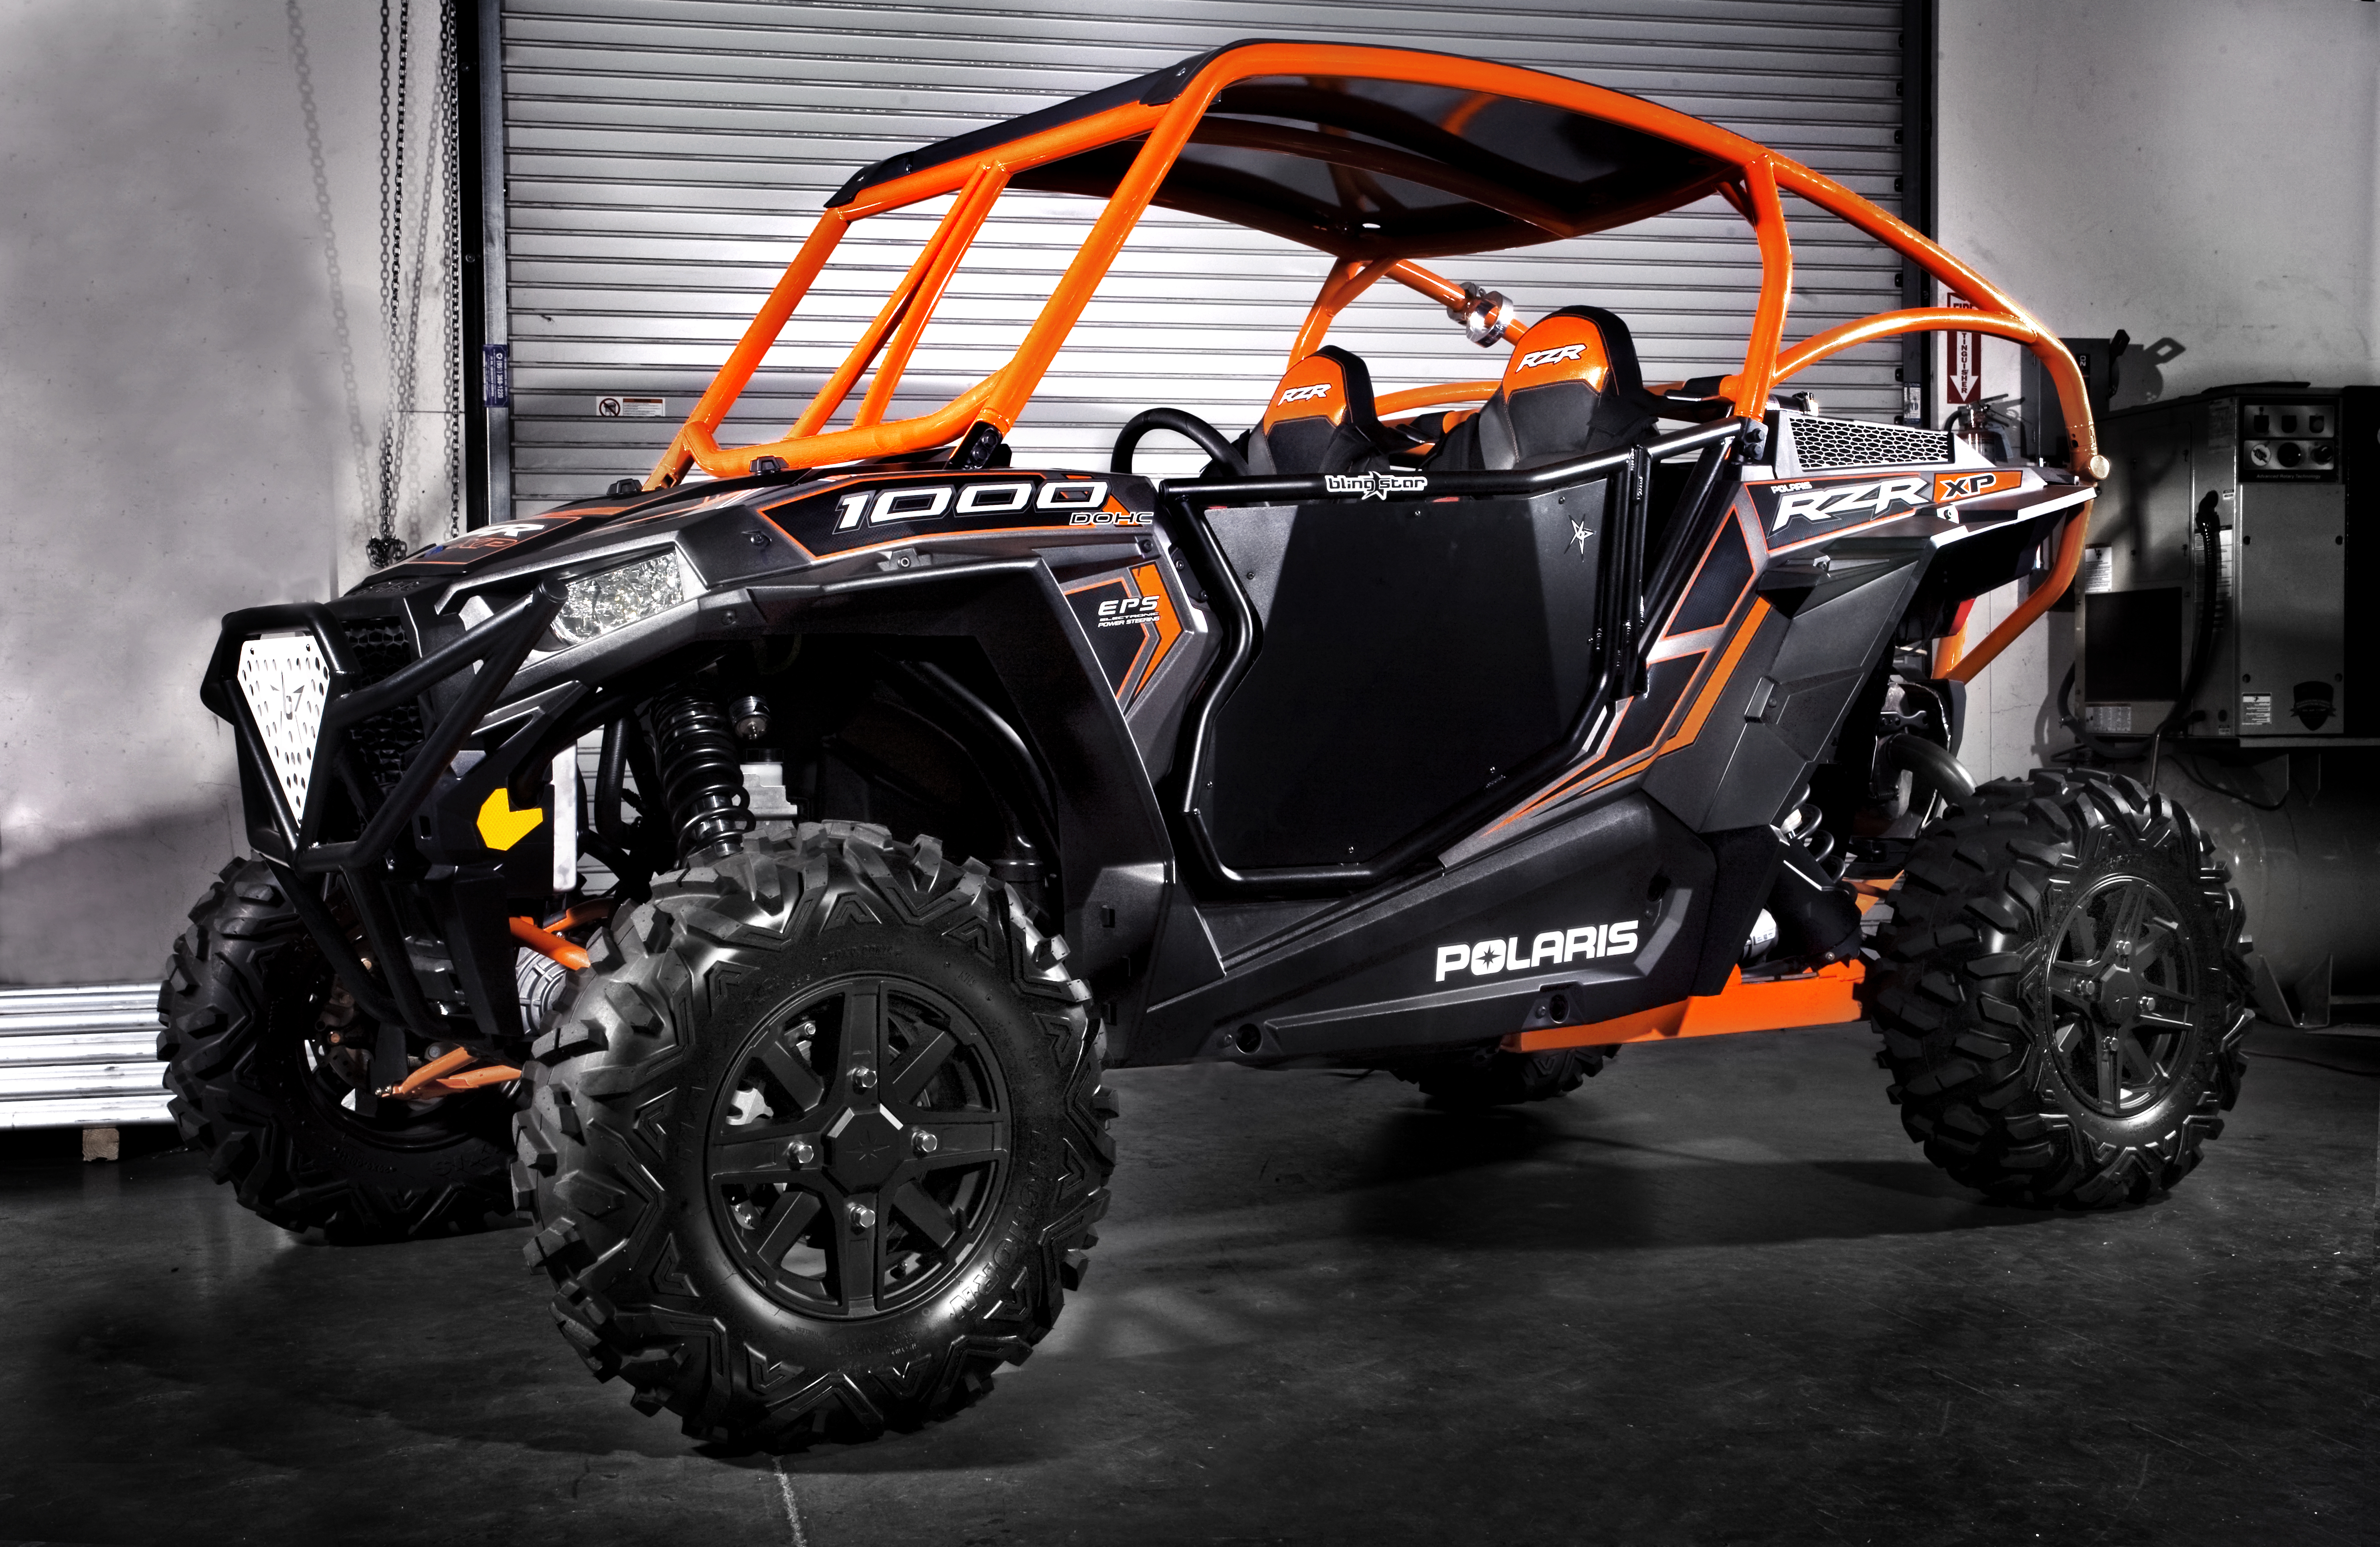 Rzr xp1000 accessories by blingstar utv weekly utv weekly for Yamaha rzr 1000